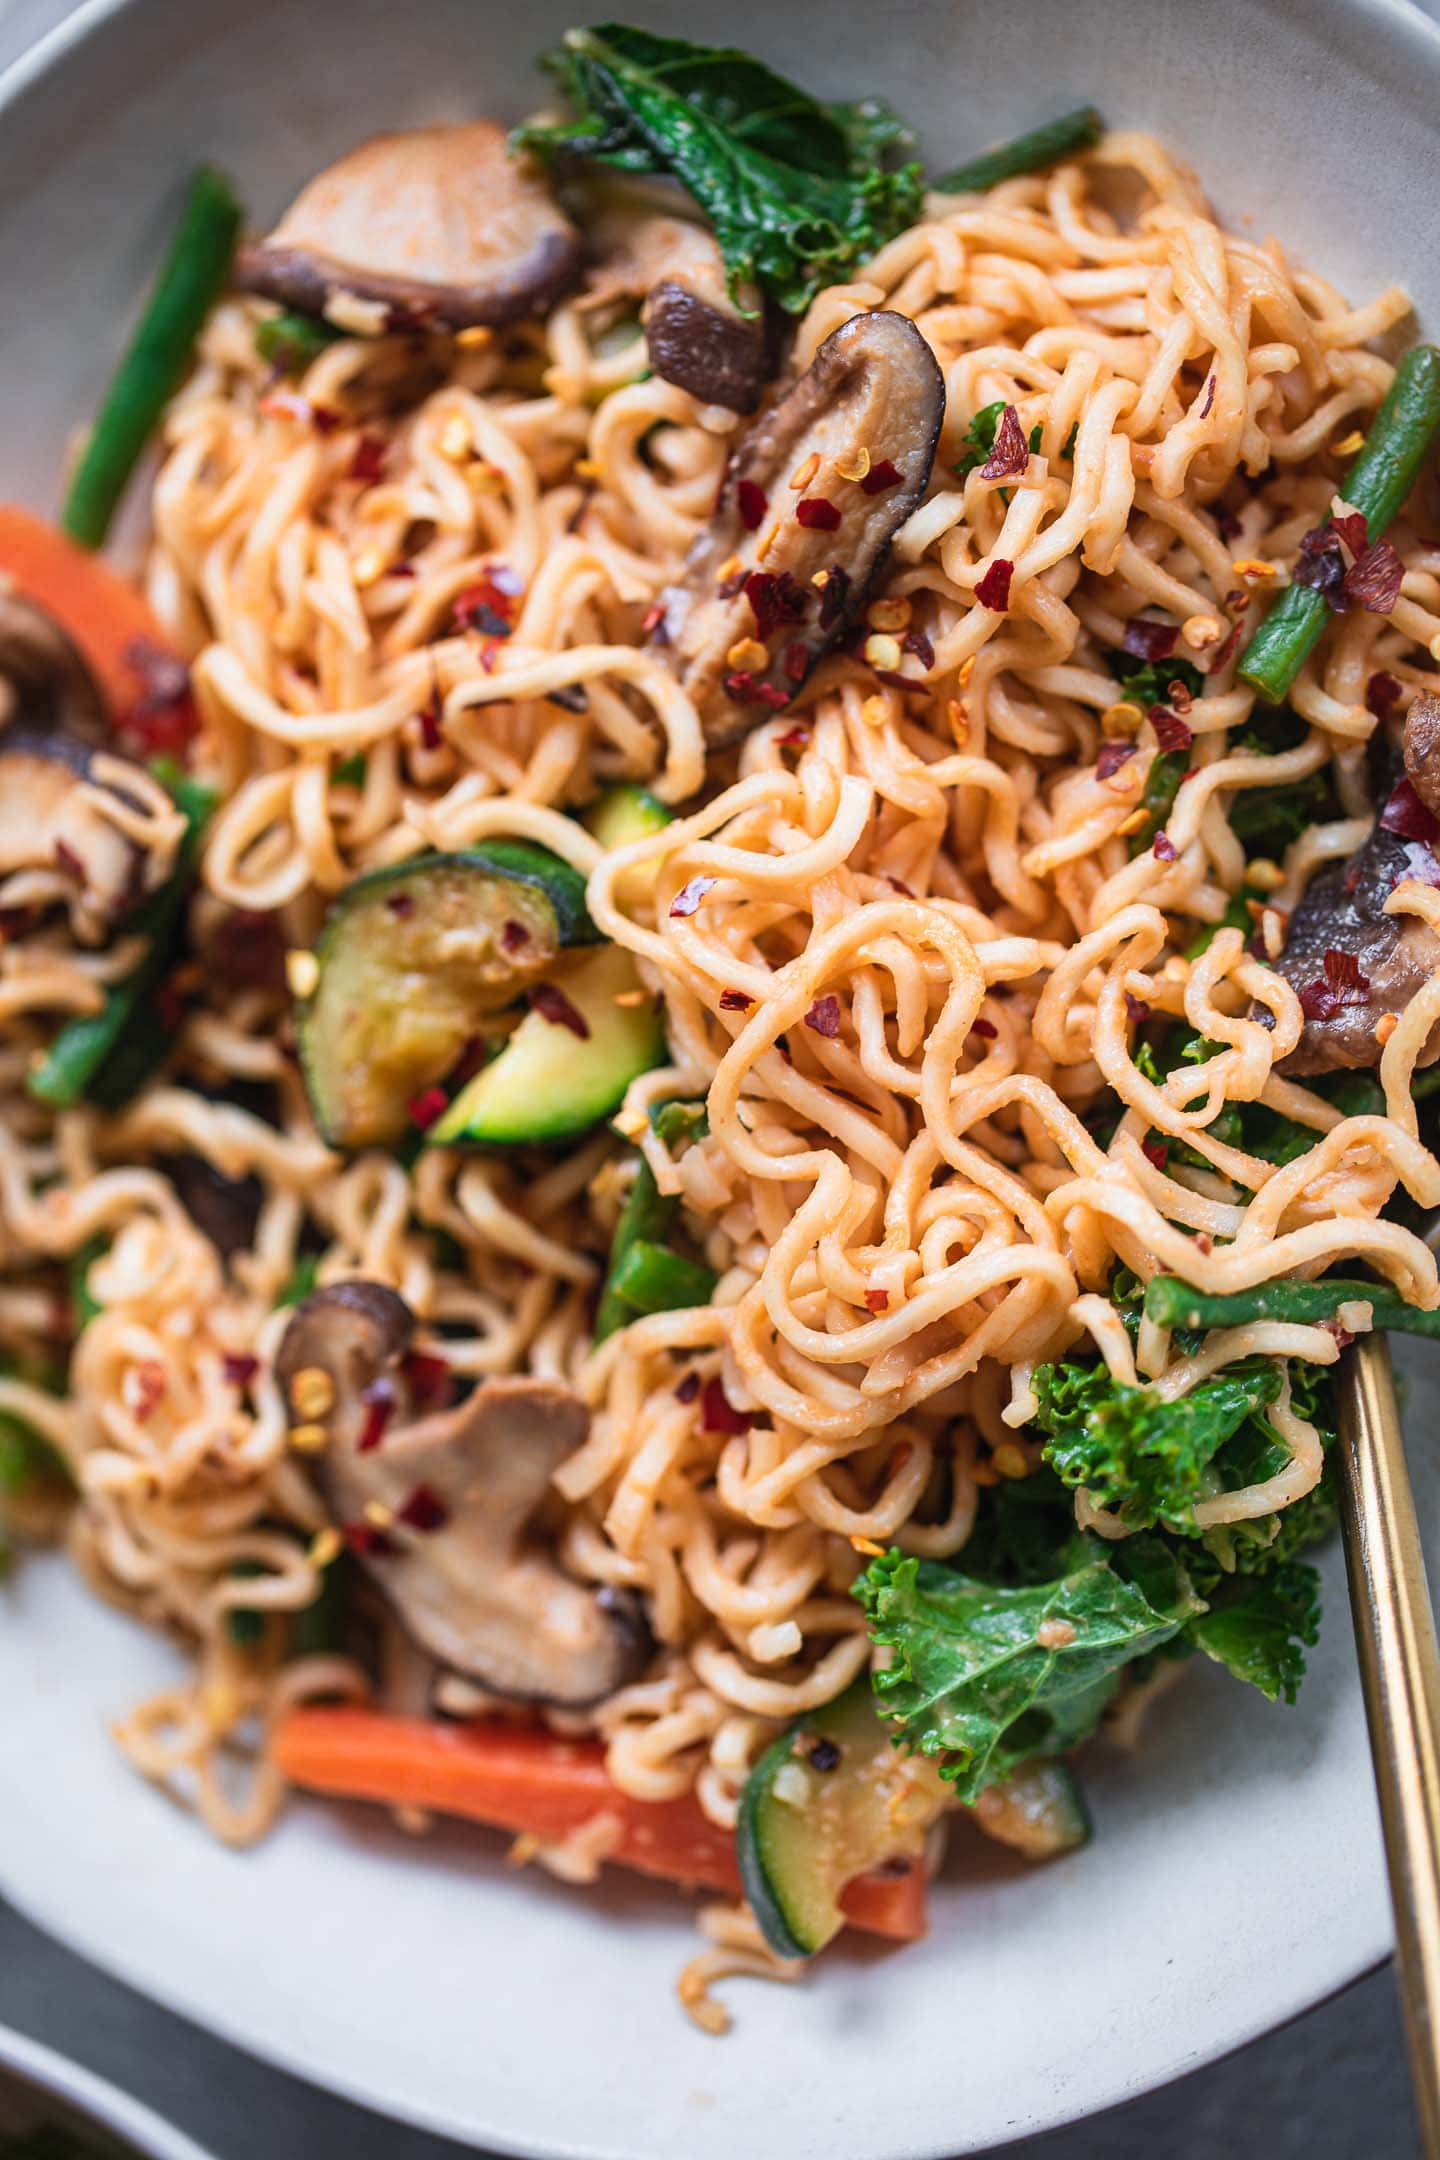 Closeup of peanut butter noodles with vegetables